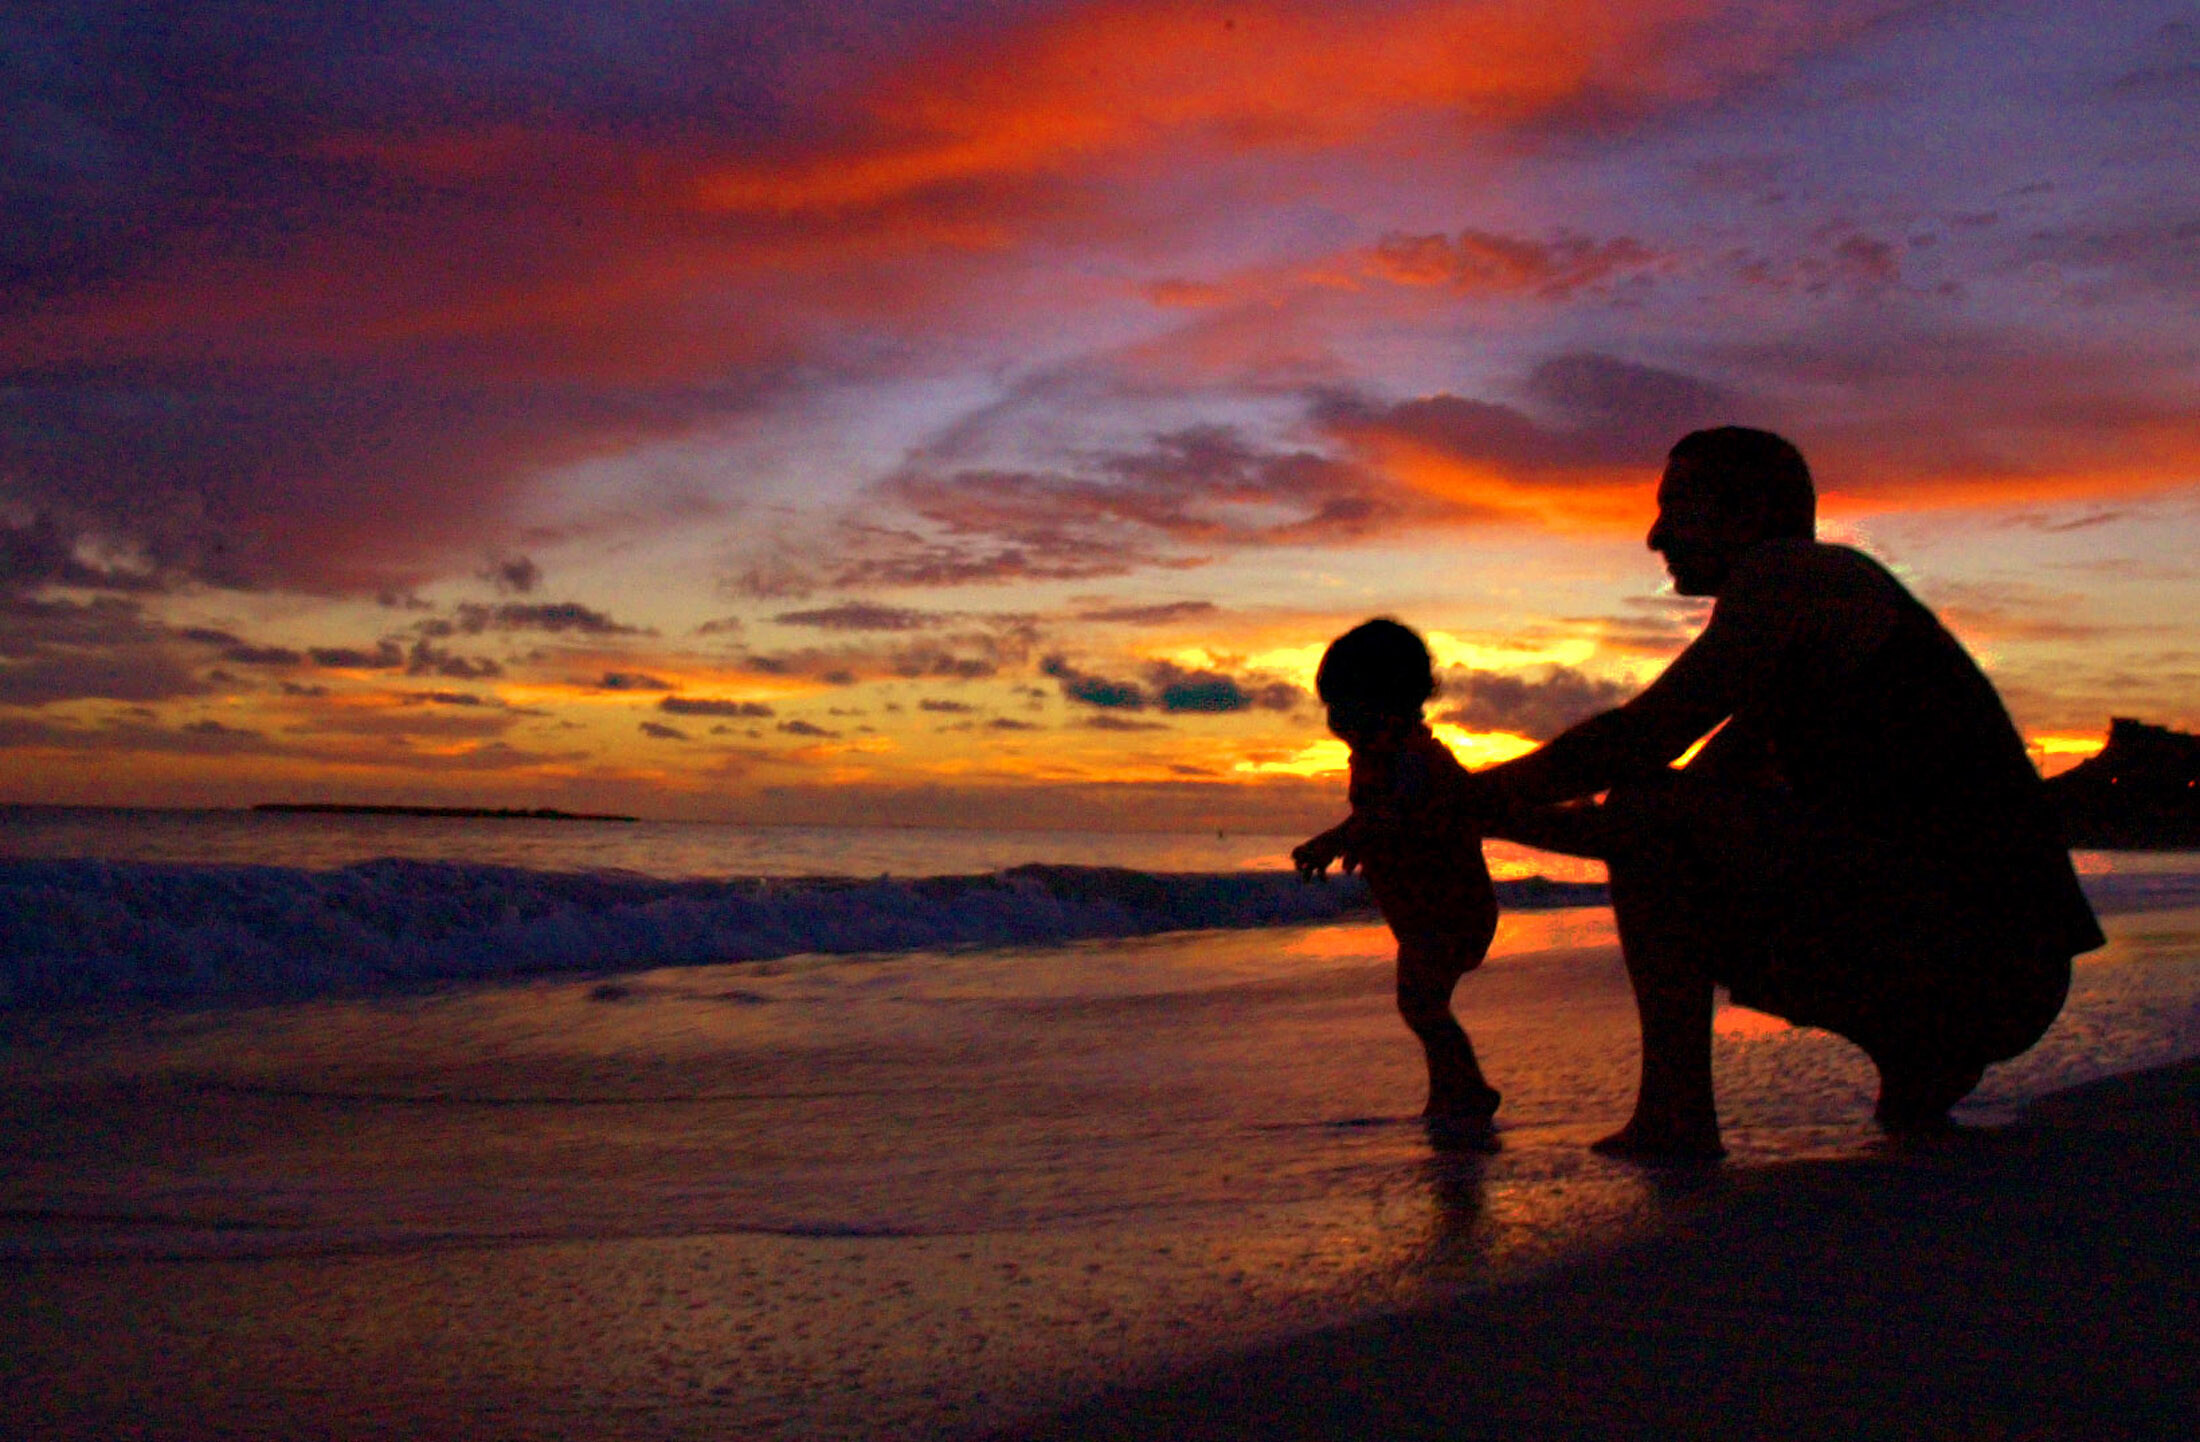 Mark Hines of Kailua plays with his son Ka'io Hines, 1, during sunrise at Kailua Beach in Kailua, Hawaii, October 19, 2003 in Kailua on the island of Oahu. Hines, a teacher in Honolulu said he wanted to let his wife sleep while his younger son woke up at before dawn. Hines recently moved to Kailua from Honolulu and this was his first sunrise since his family moved to their new home within walking distance to the ocean. NO RIGHTS CLEARANCES OR PERMISSIONS ARE REQUIRED FOR THIS IMAGE REUTERS/Lucy Pemoni LP/GAC - RTR598R